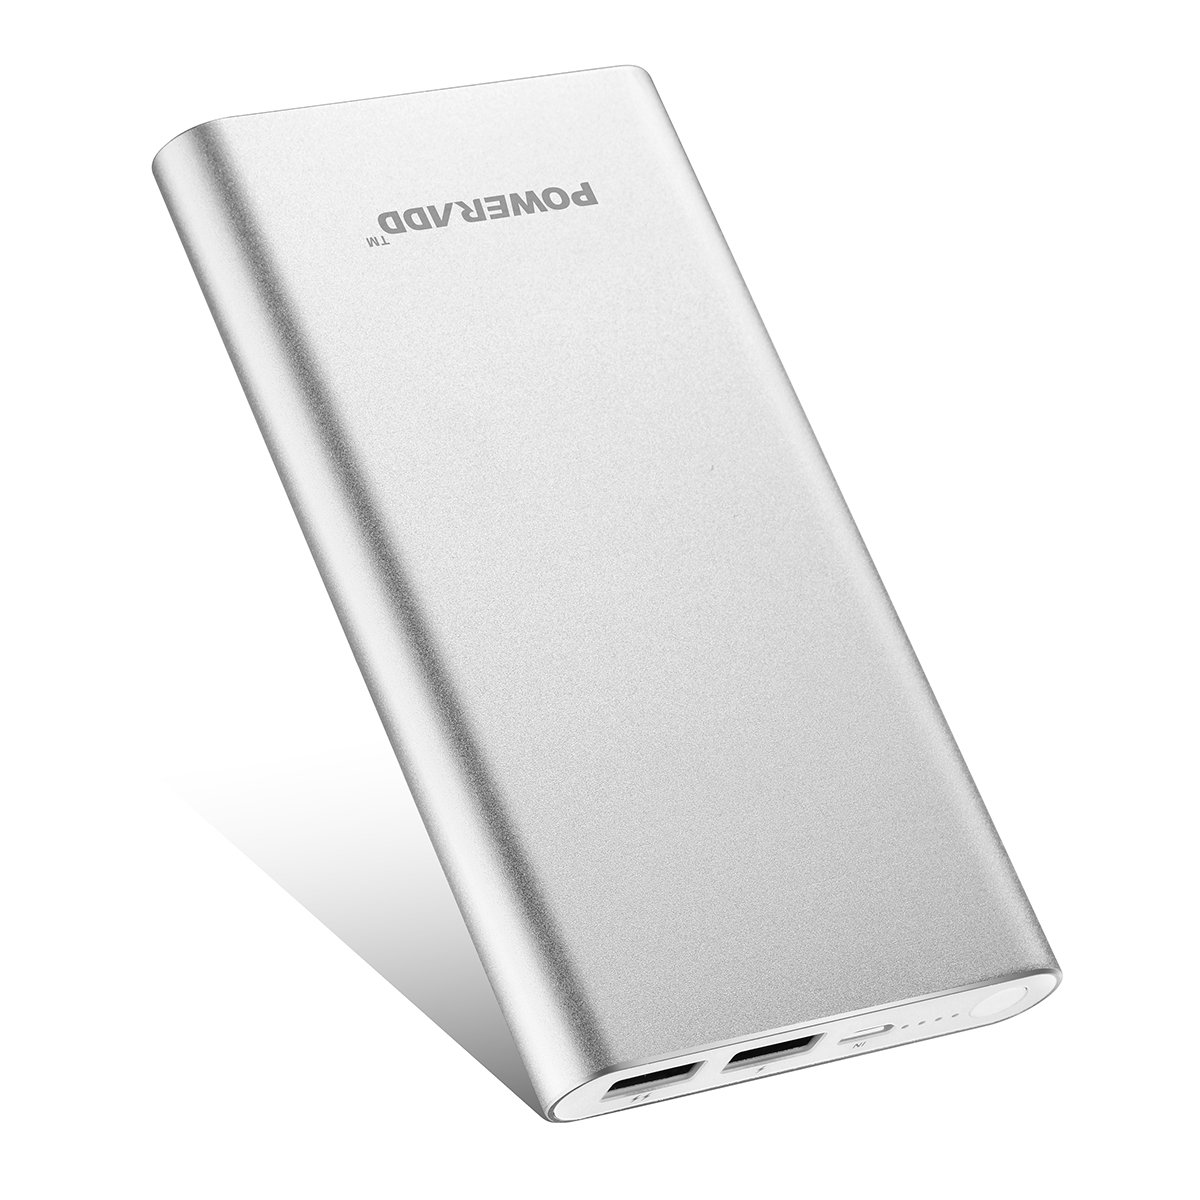 Top 10 Best iPhone 8 Plus External Battery Reviews 2018-2019 - cover